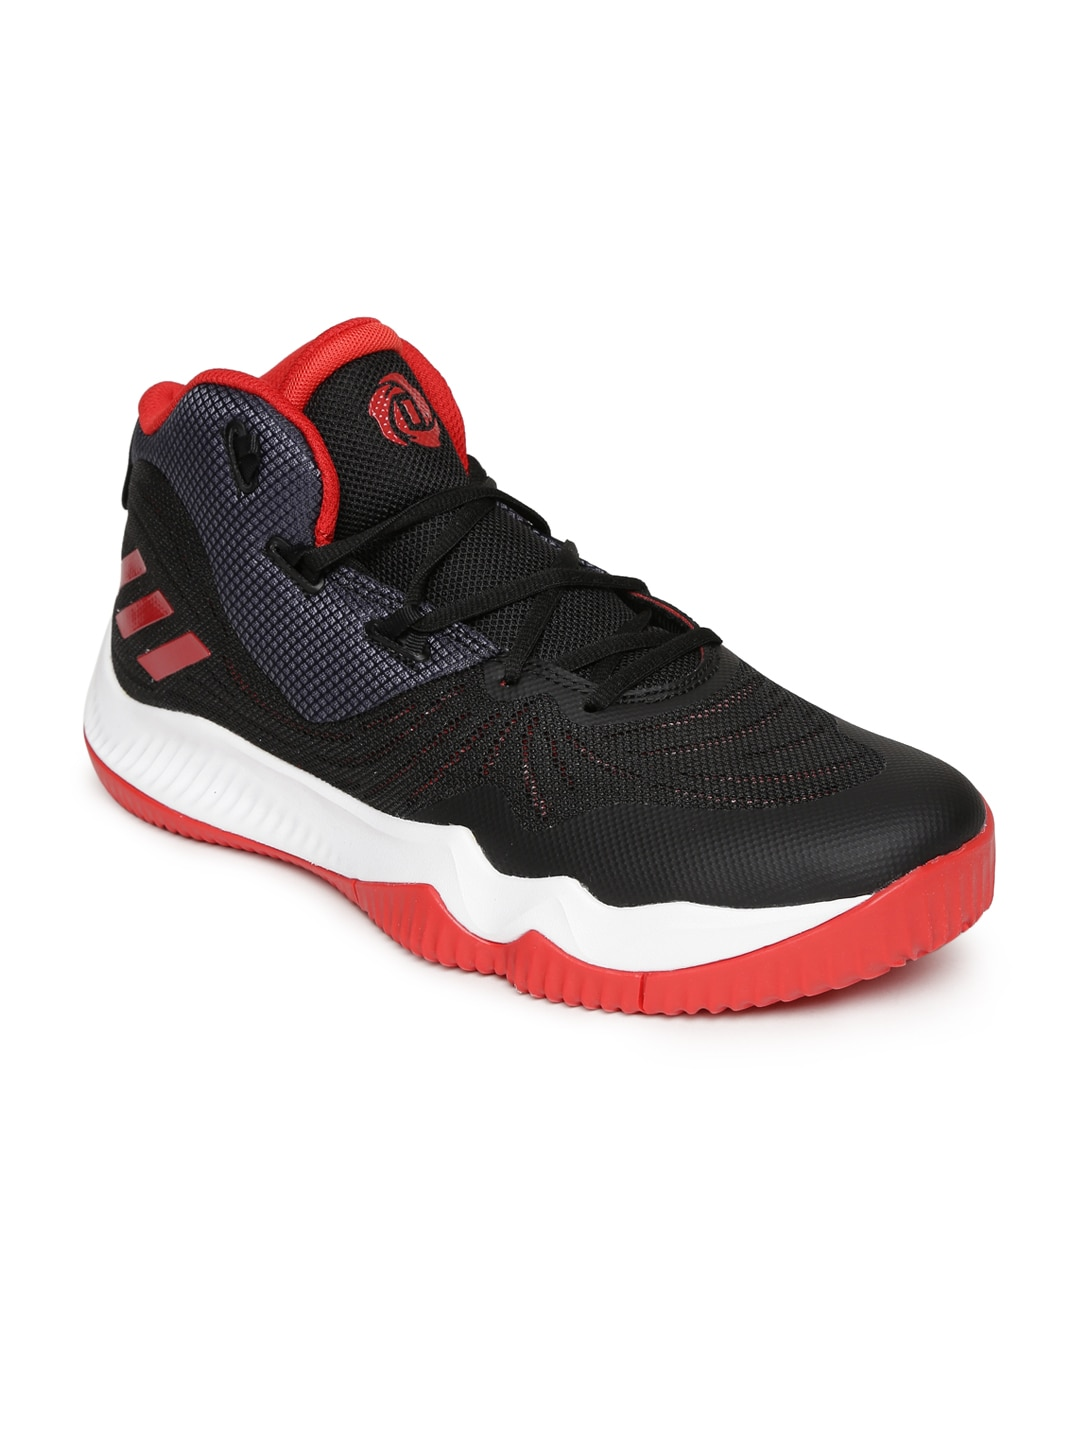 023a86cf6957 Sports Shoes for Men - Buy Men Sports Shoes Online in India - Myntra